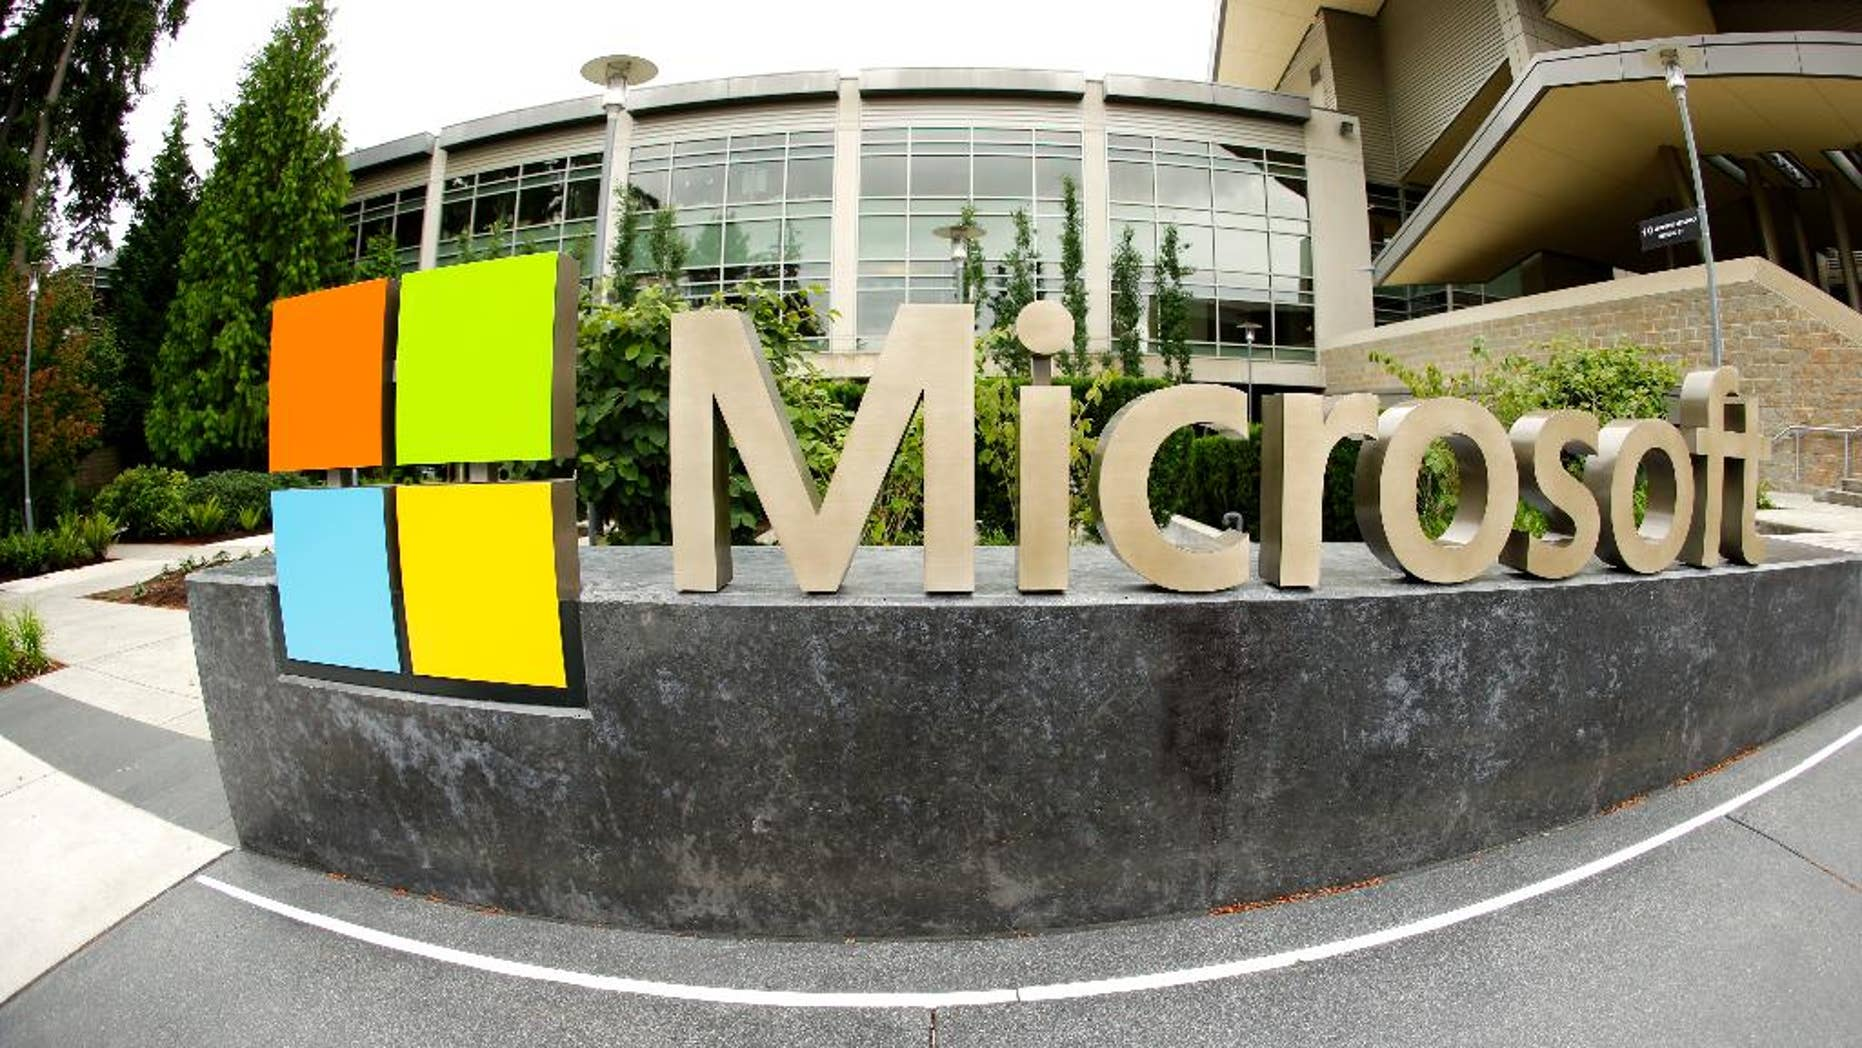 FILE - This July 3, 2014 file photo taken with a fisheye lens shows Microsoft Corp. signage outside the Microsoft Visitor Center in Redmond, Wash. Microsoft will acquire Stockholm-based game maker Mojang, the maker of the popular game Minecraft for $2.5 billion, the company announced Monday, Sept. 15, 2014. (AP Photo Ted S. Warren, File)